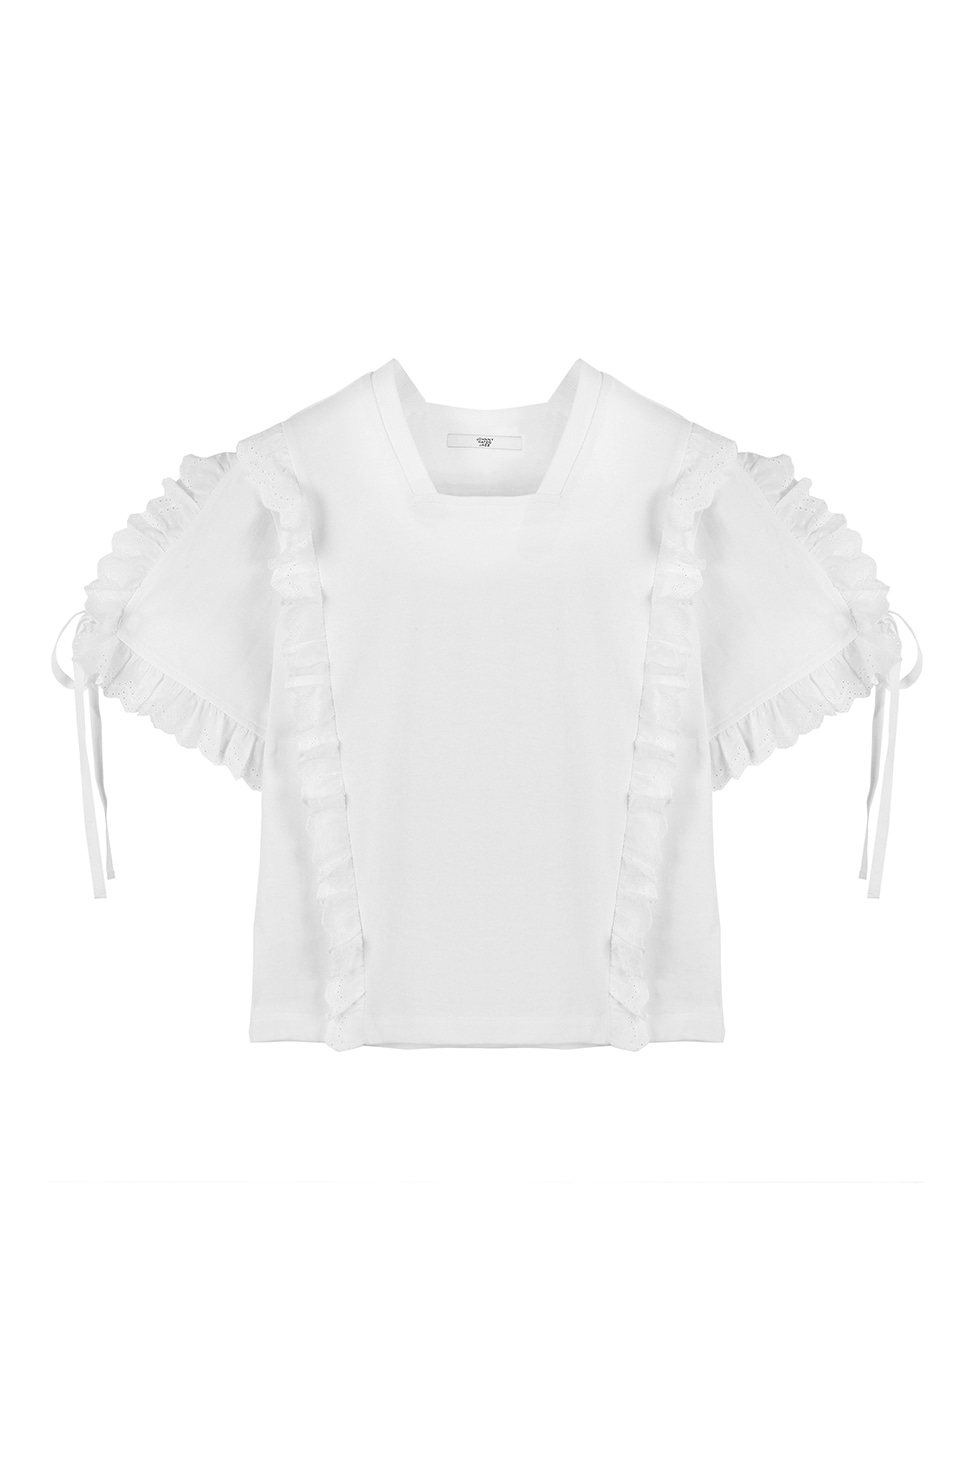 COTTON RUFFLE T-SHIRTS - WHITE